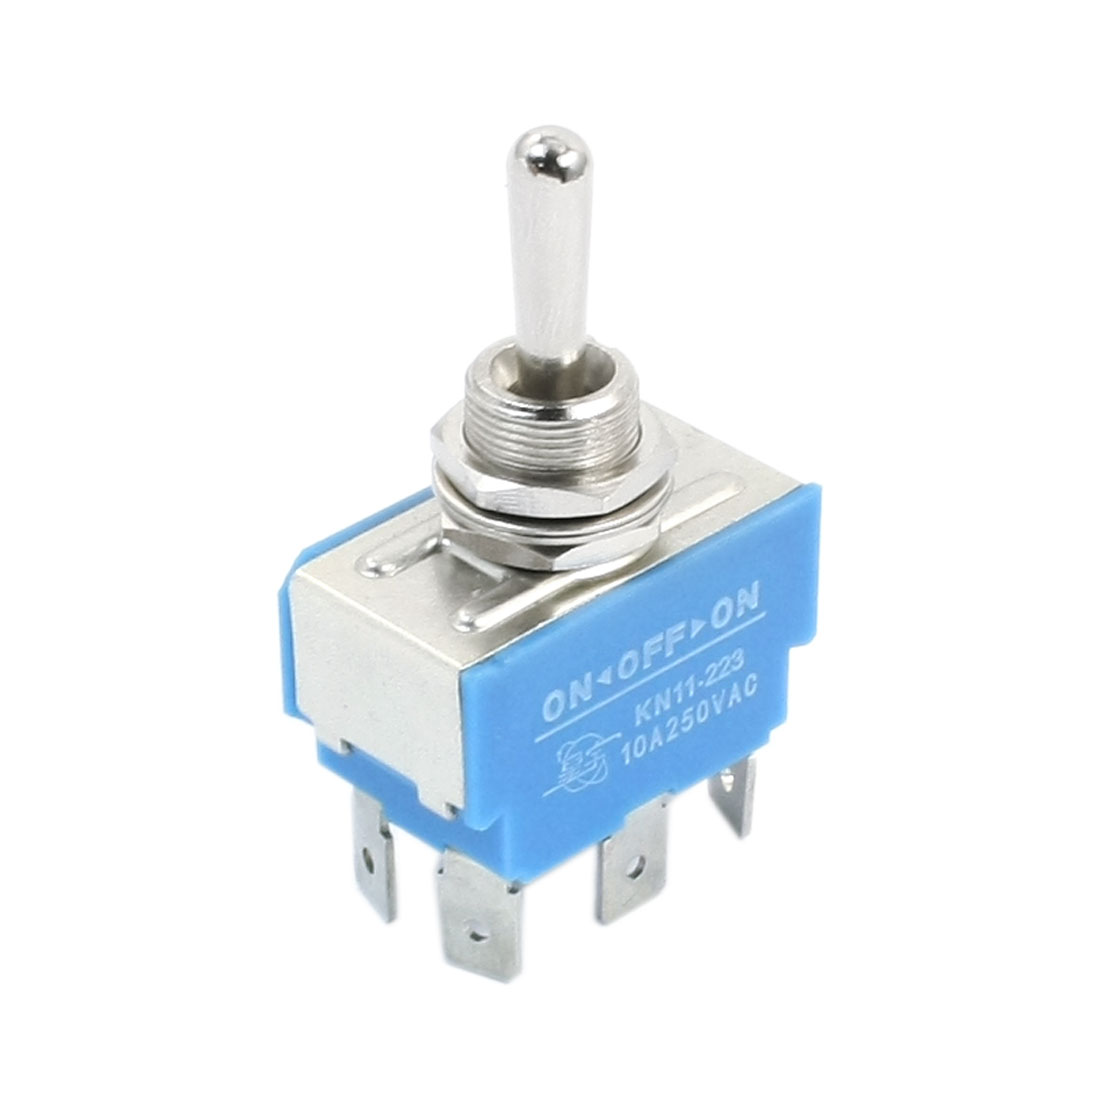 KN11-223 DPDT 3 Positions Momentary 6-Terminals Toggle Switch AC250V 10A